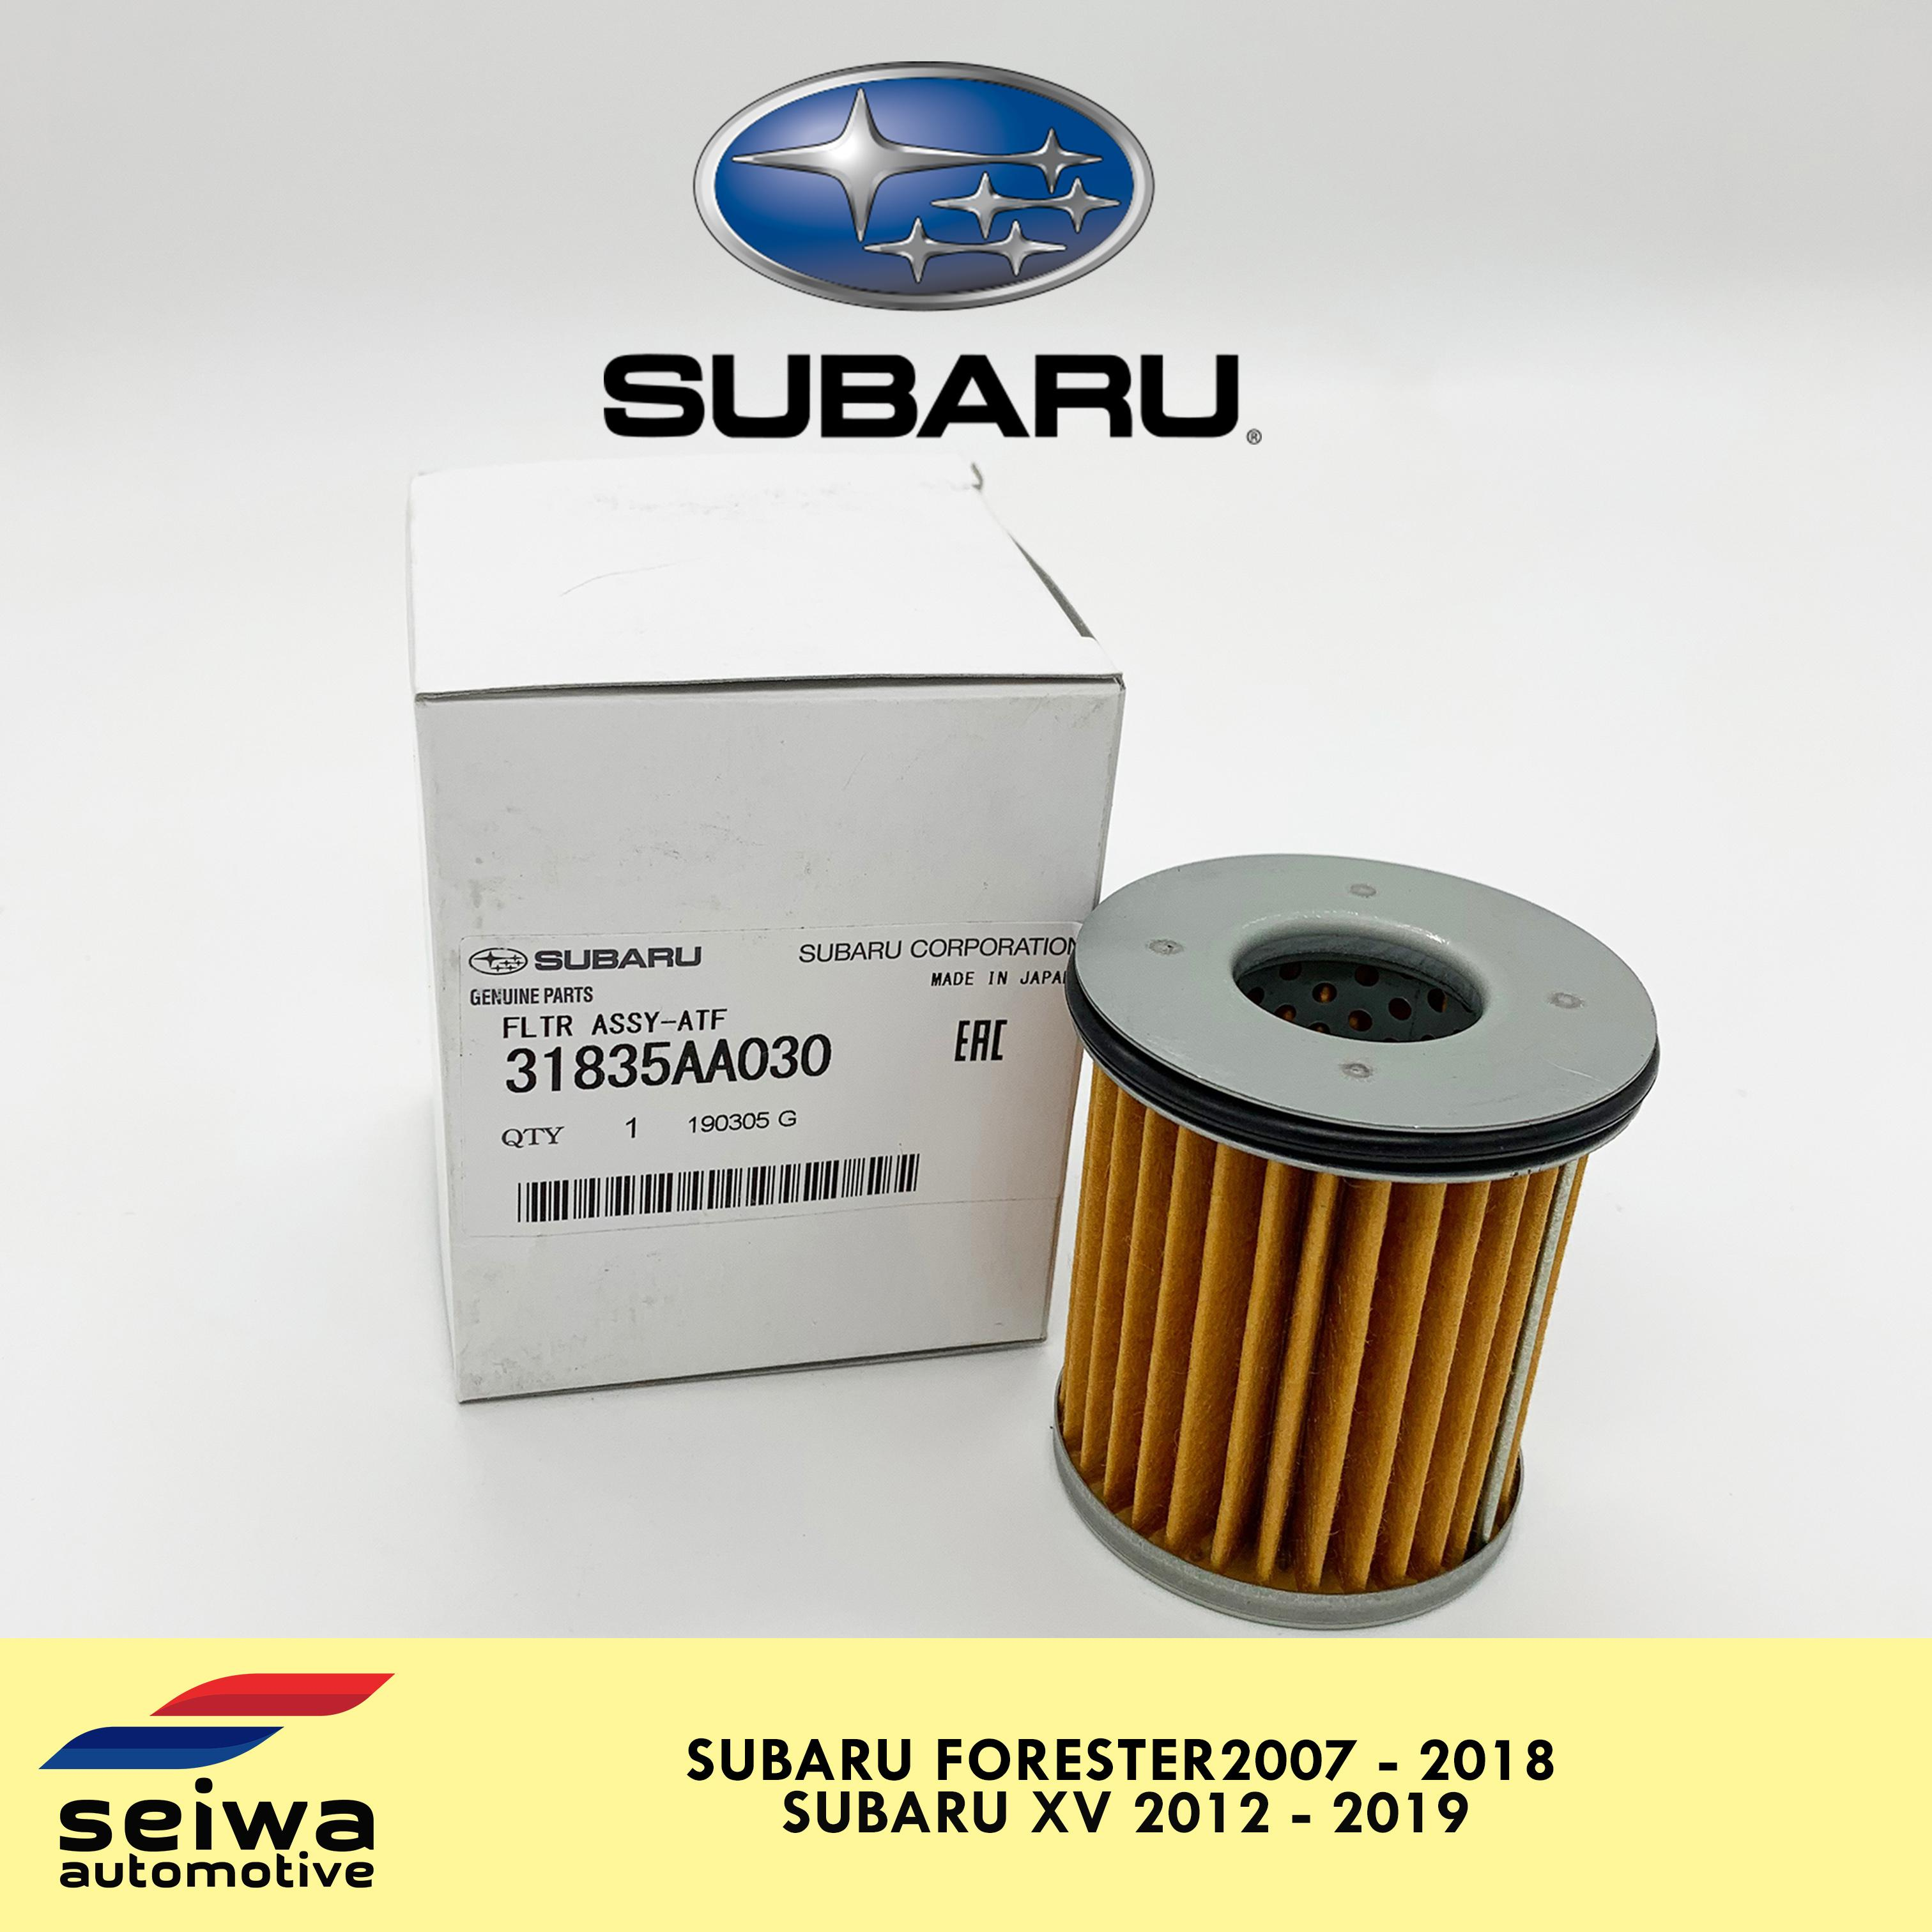 Subaru XV Transmission Filter - Subaru Forester Transmission Filter -  Genuine Subaru Auto Parts - 31835AA030